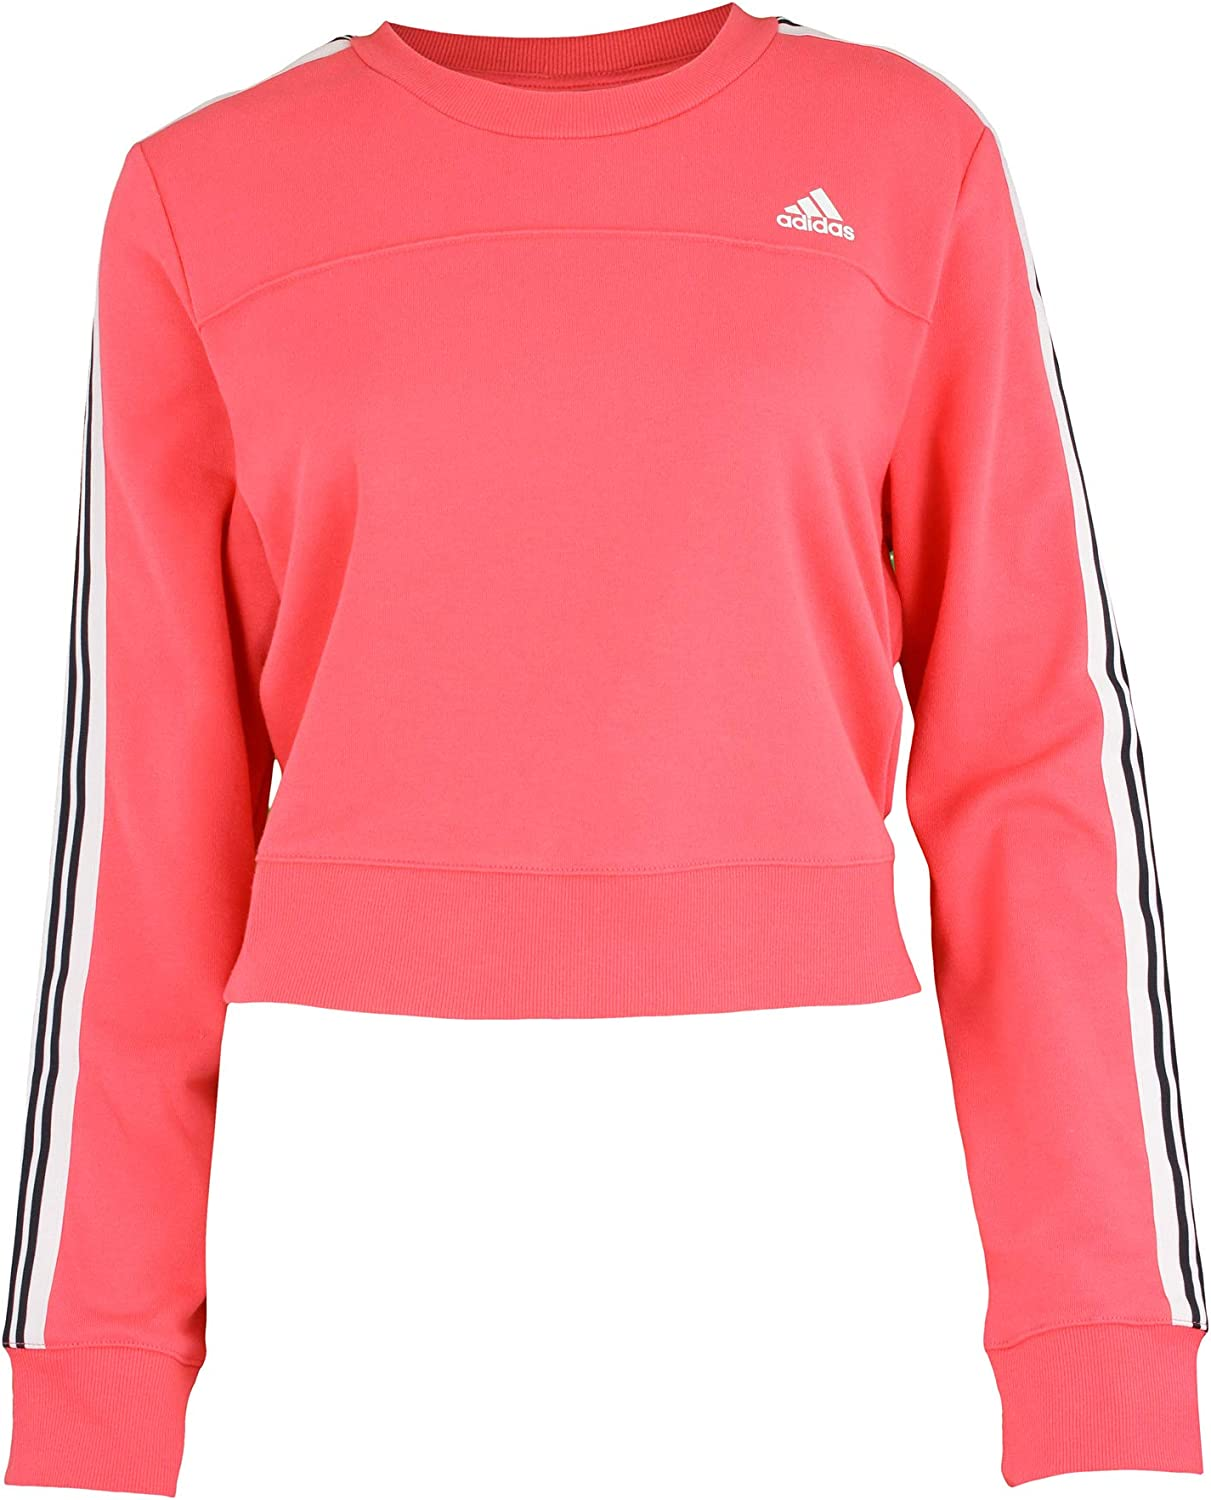 adidas Women's Cho Crew Pullover Sweater, Pink: Clothing